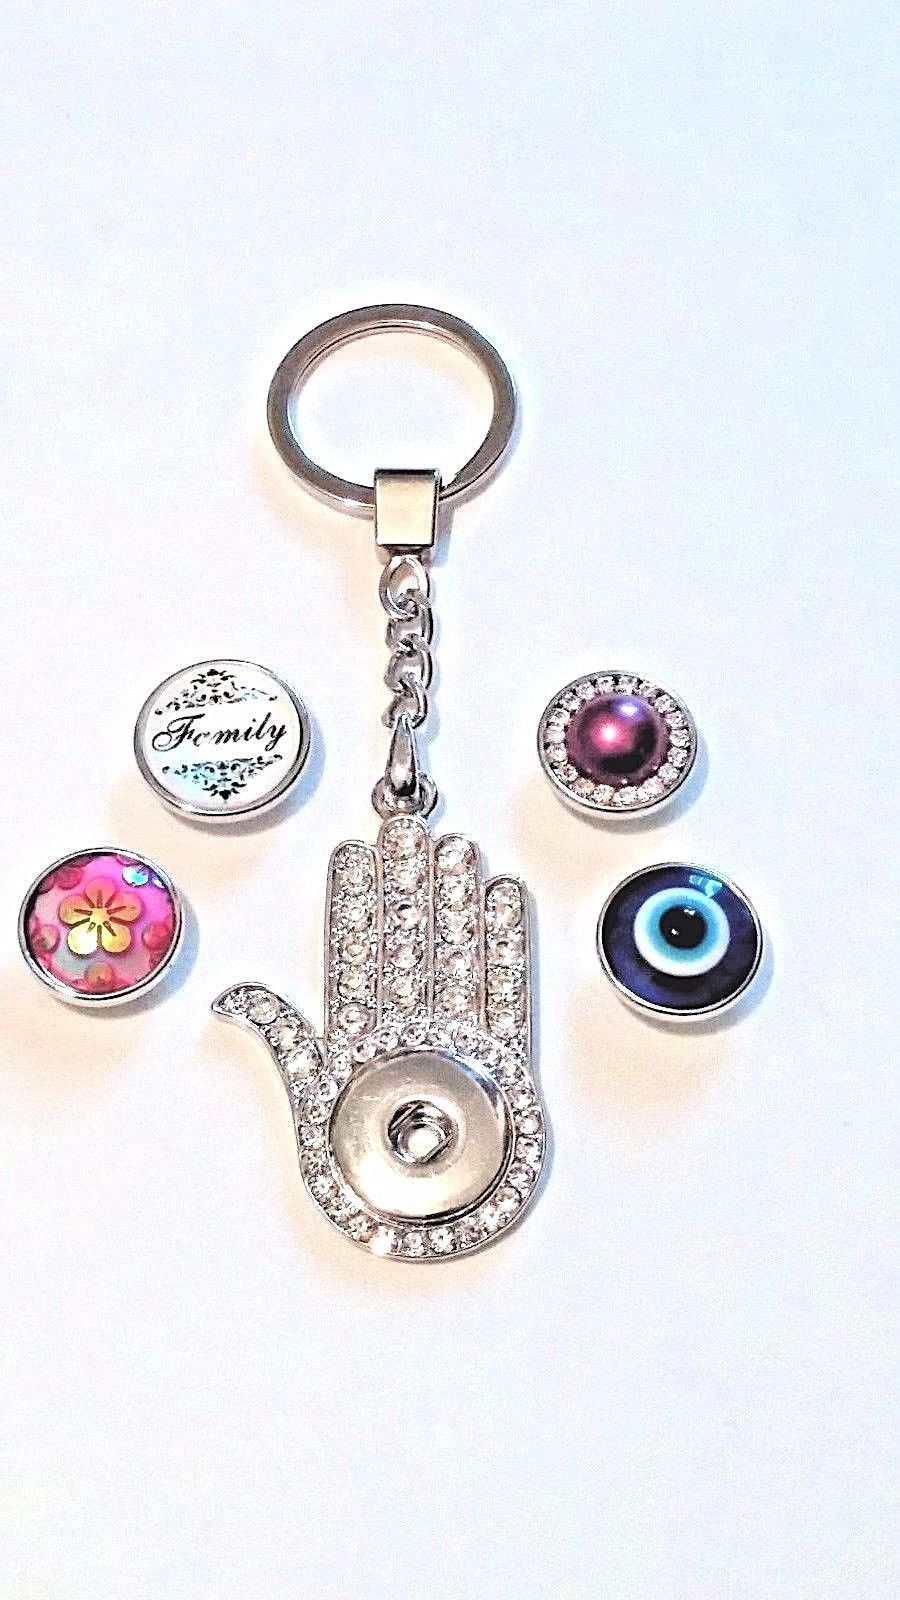 NEW UNIQUE Sparkly Hand SNAP KEY CHAIN   + 4  snaps works w/Ginger snaps 18 mm